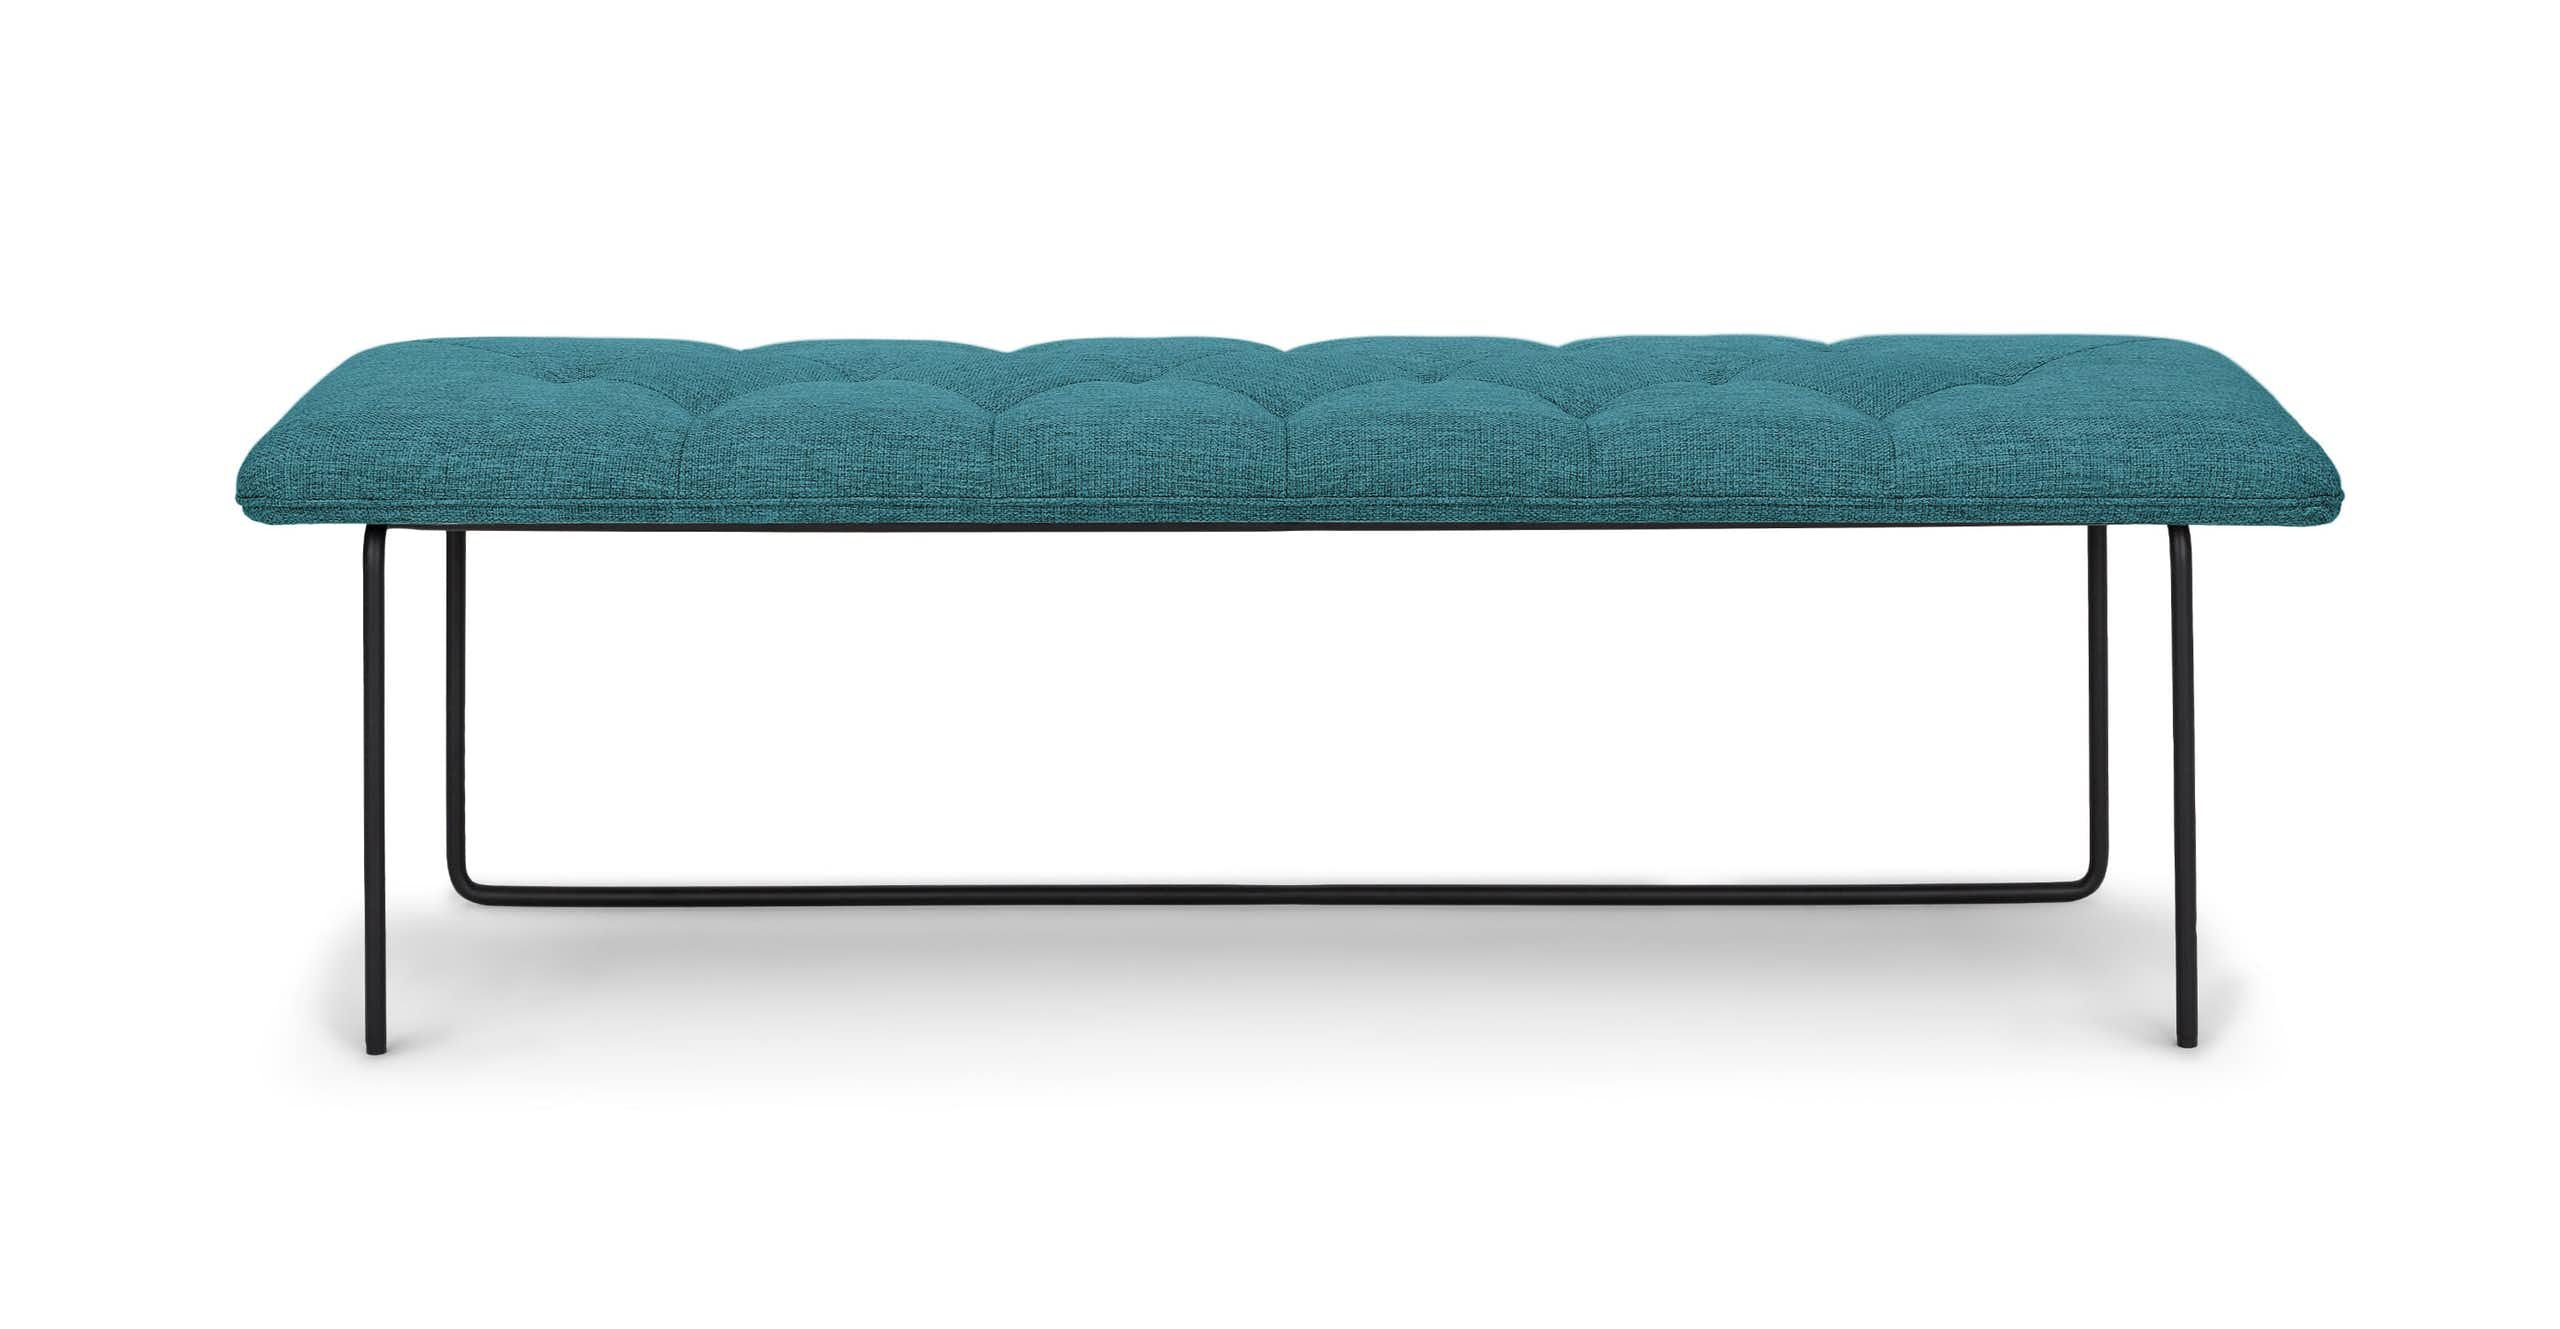 Turquoise Tufted Fabric Bench, Metal Legs   Article Level Modern Furniture is part of Living Room Chairs Benches - Light and breezy  The Level bench's comfy tufted seat invites ongoing conversation  Set atop unique curving powdercoated steel legs, the Level bench brings architectural interest to your space  Style it in your foyer, or pull it up to the dining table for a fun, multiperson seat at the table